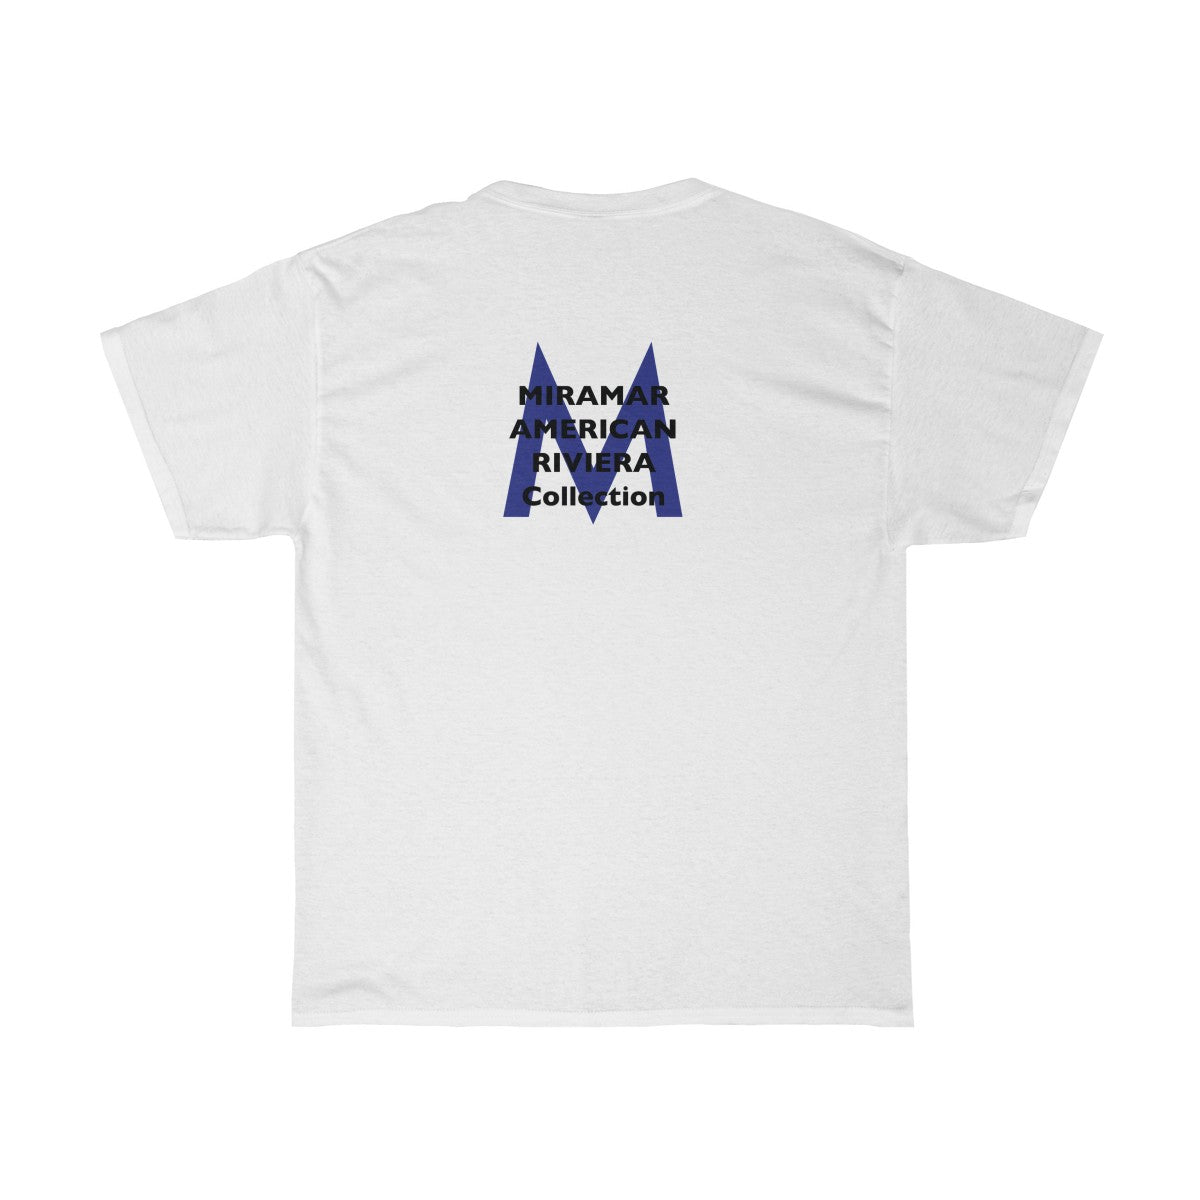 Miramar® Signature Collection T-Shirt